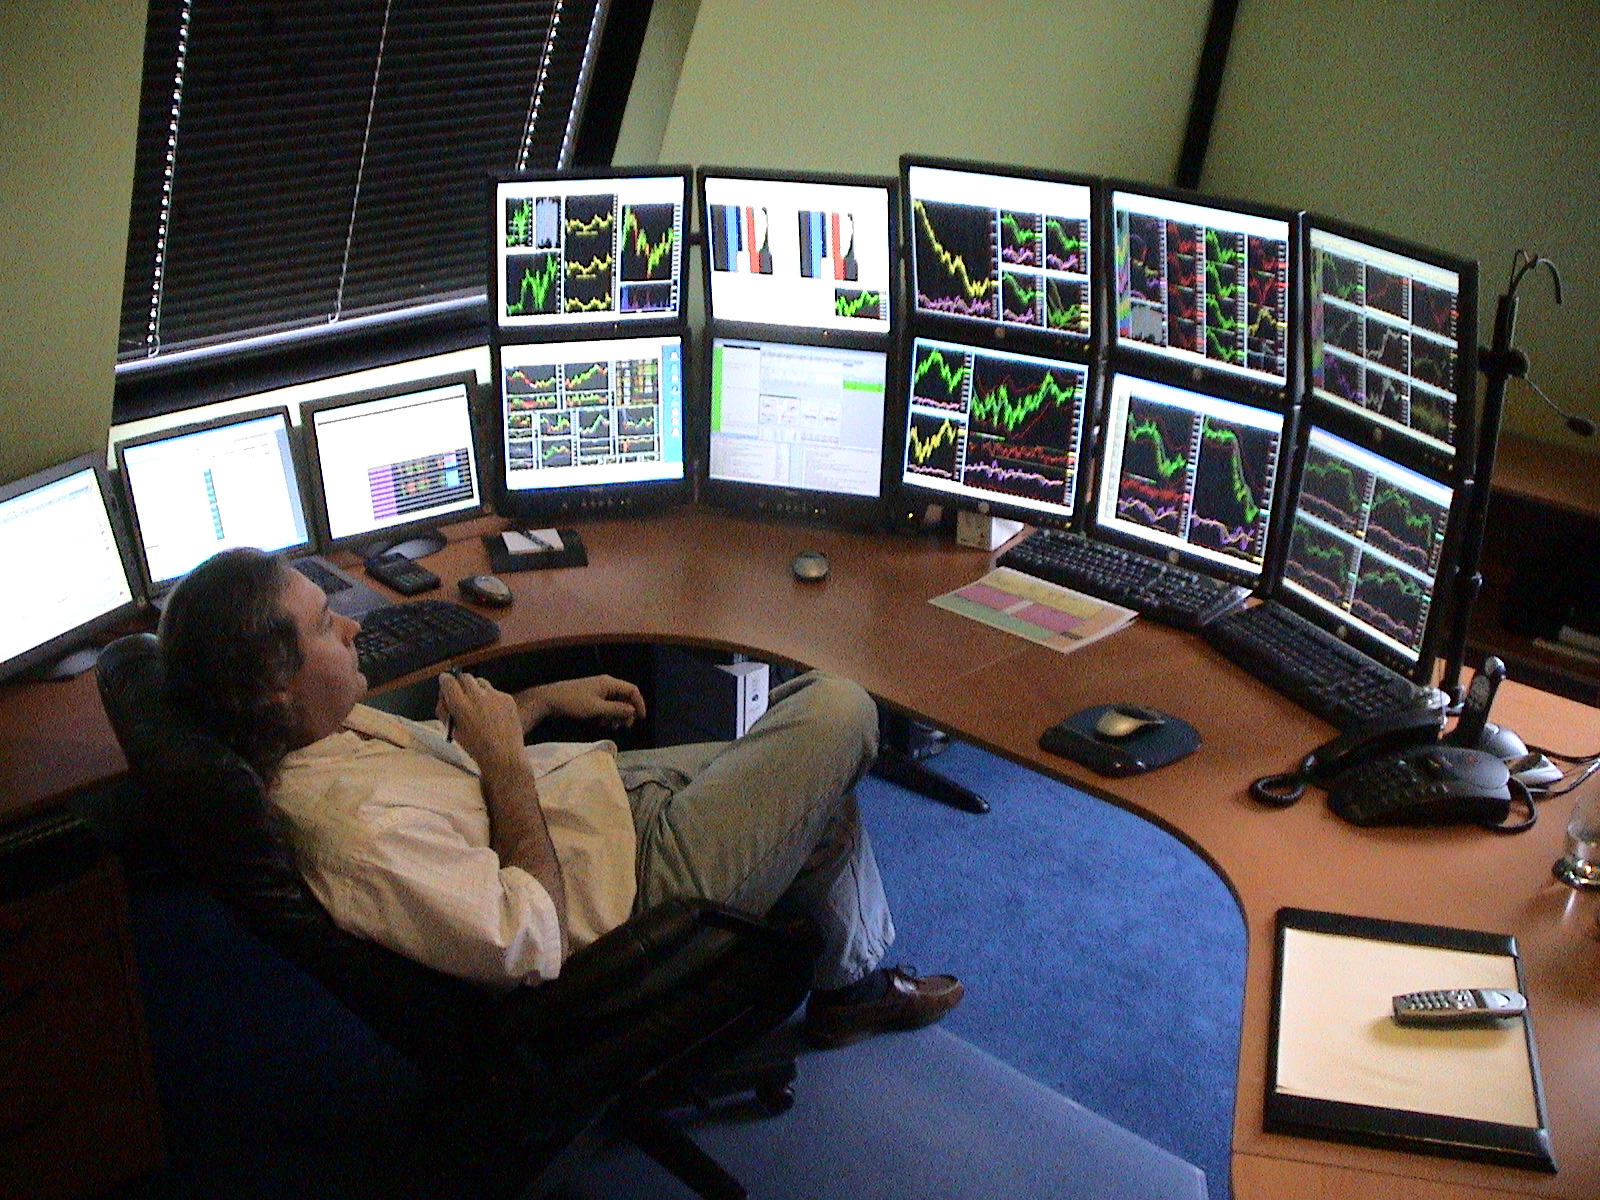 Trading software | Best trading tools and information - futures, forex, stocks